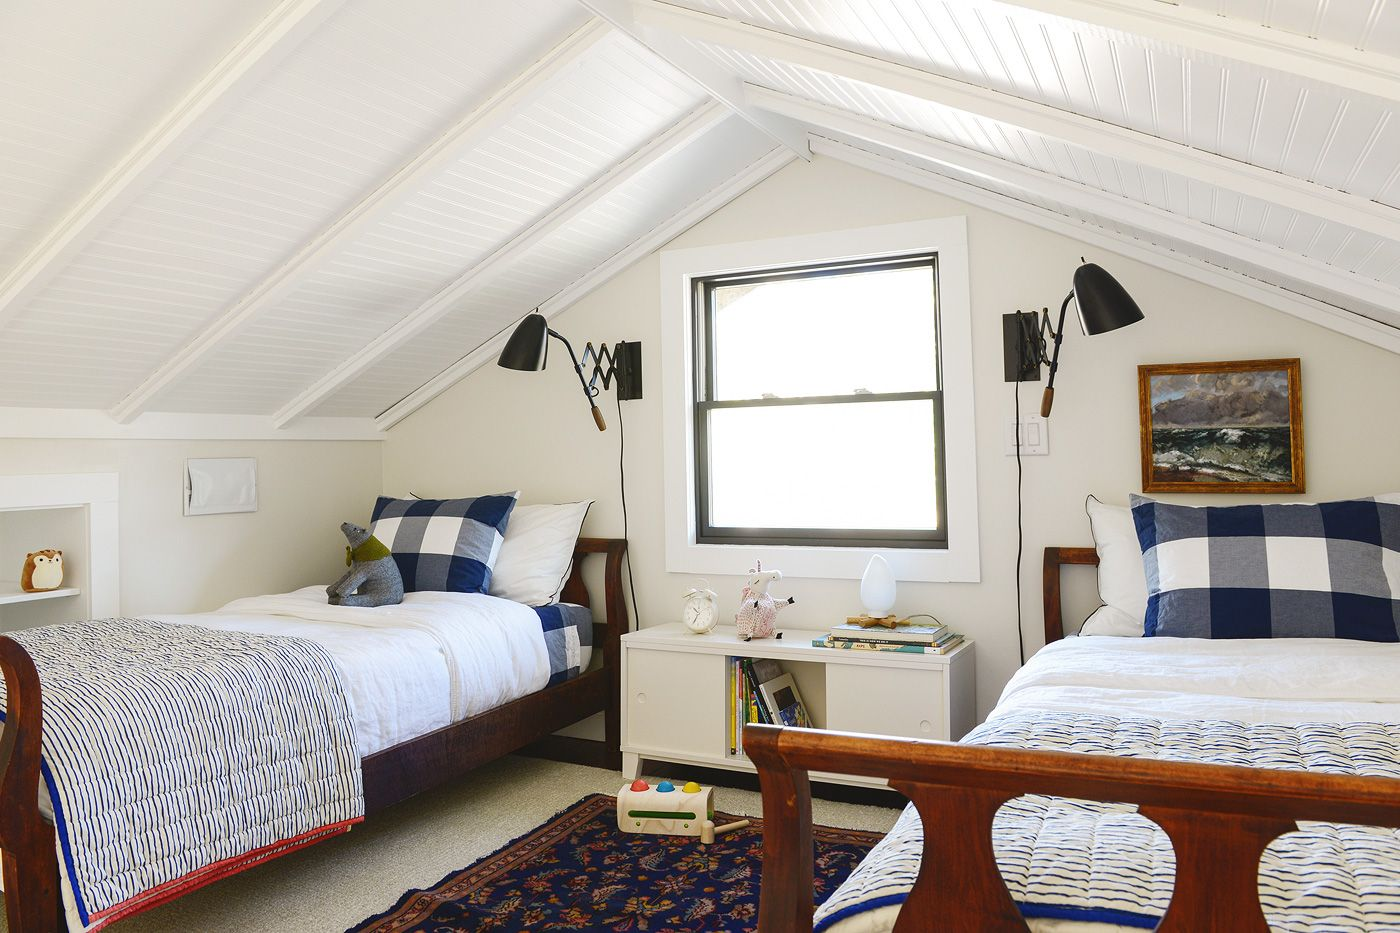 Our Hidden Lighting Solution For The Sleeping Loft Sleeping Loft Pitched Ceiling Hidden Lighting